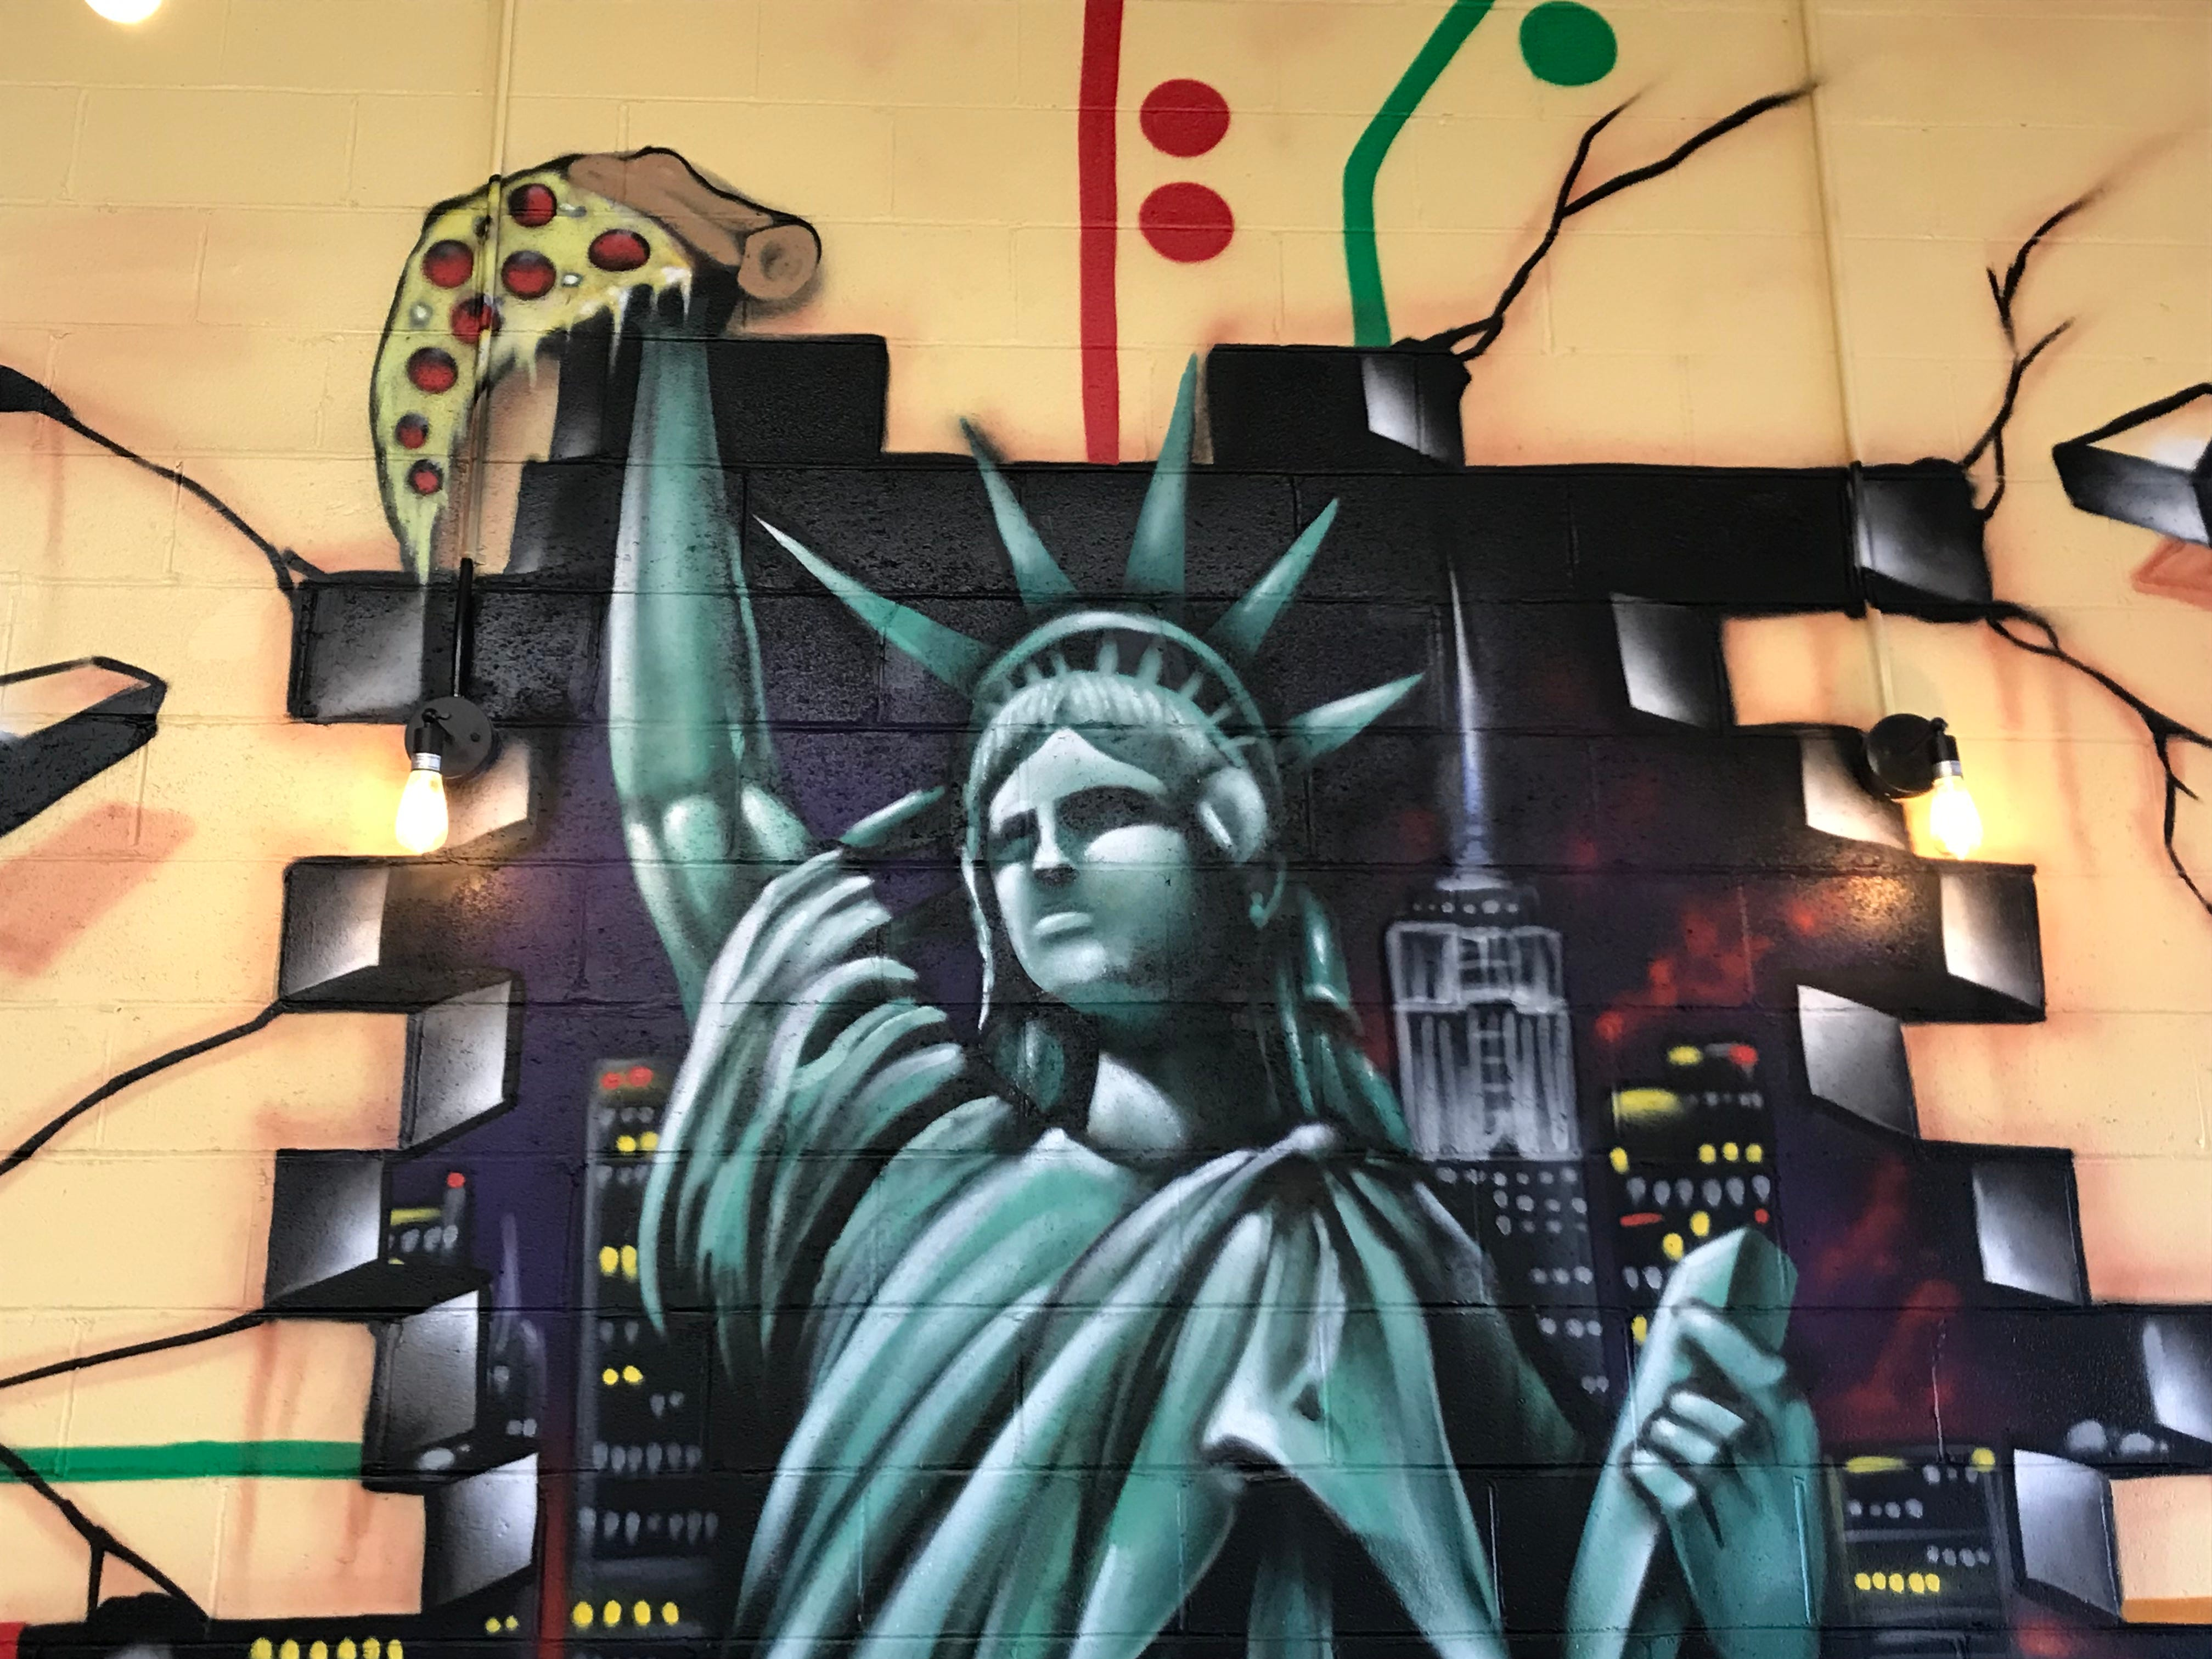 The Statue of Liberty holding a slice of pizza is the focal point of a mural at the Pittsford Stop in Pittsford Plaza.